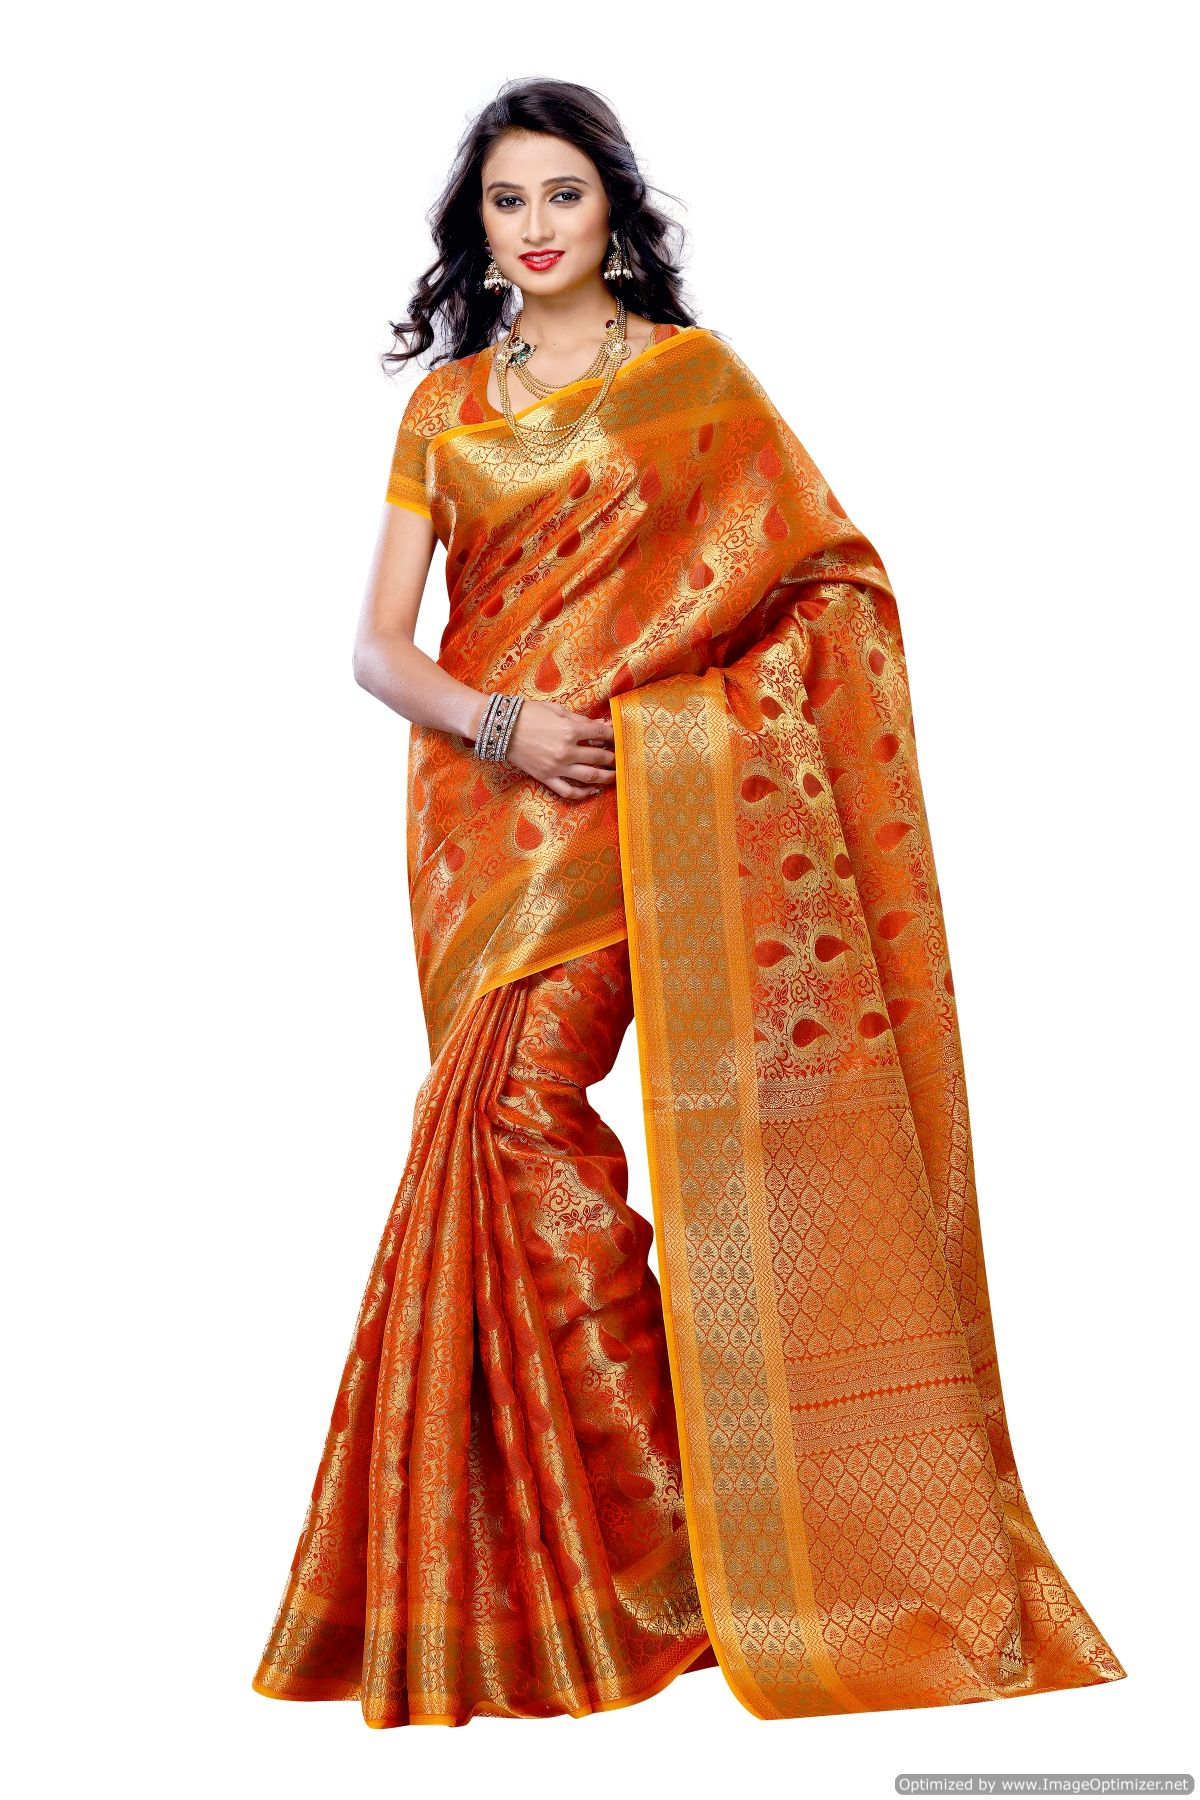 e12bcc93be Mimosa Women\'s Art Kanchipuram Silk Saree With Blouse,color :orange(3190-164-org)